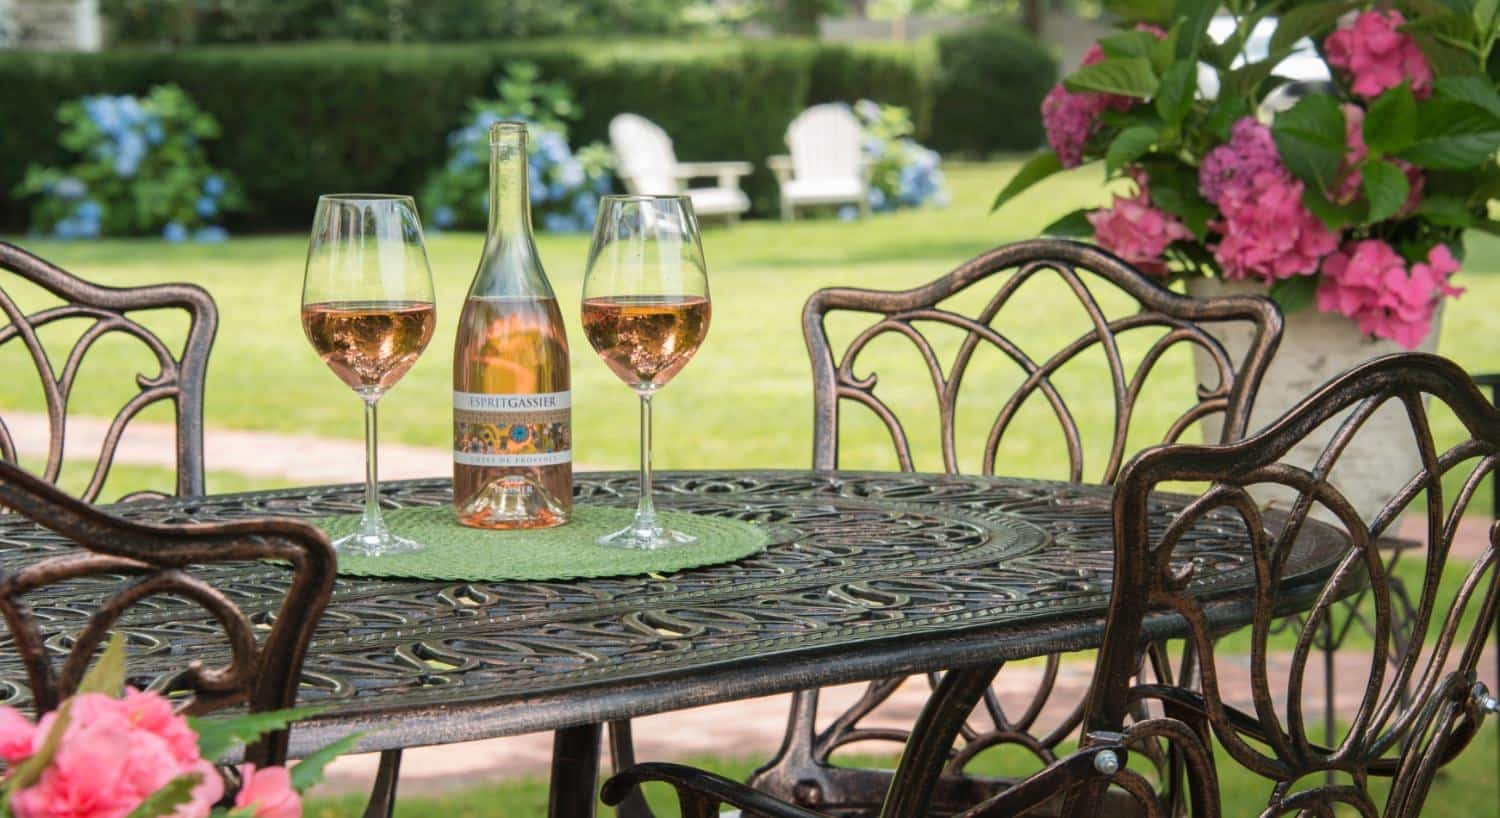 Rod iron patio table and chairs with wine bottle and two wine glasses full of wine on top